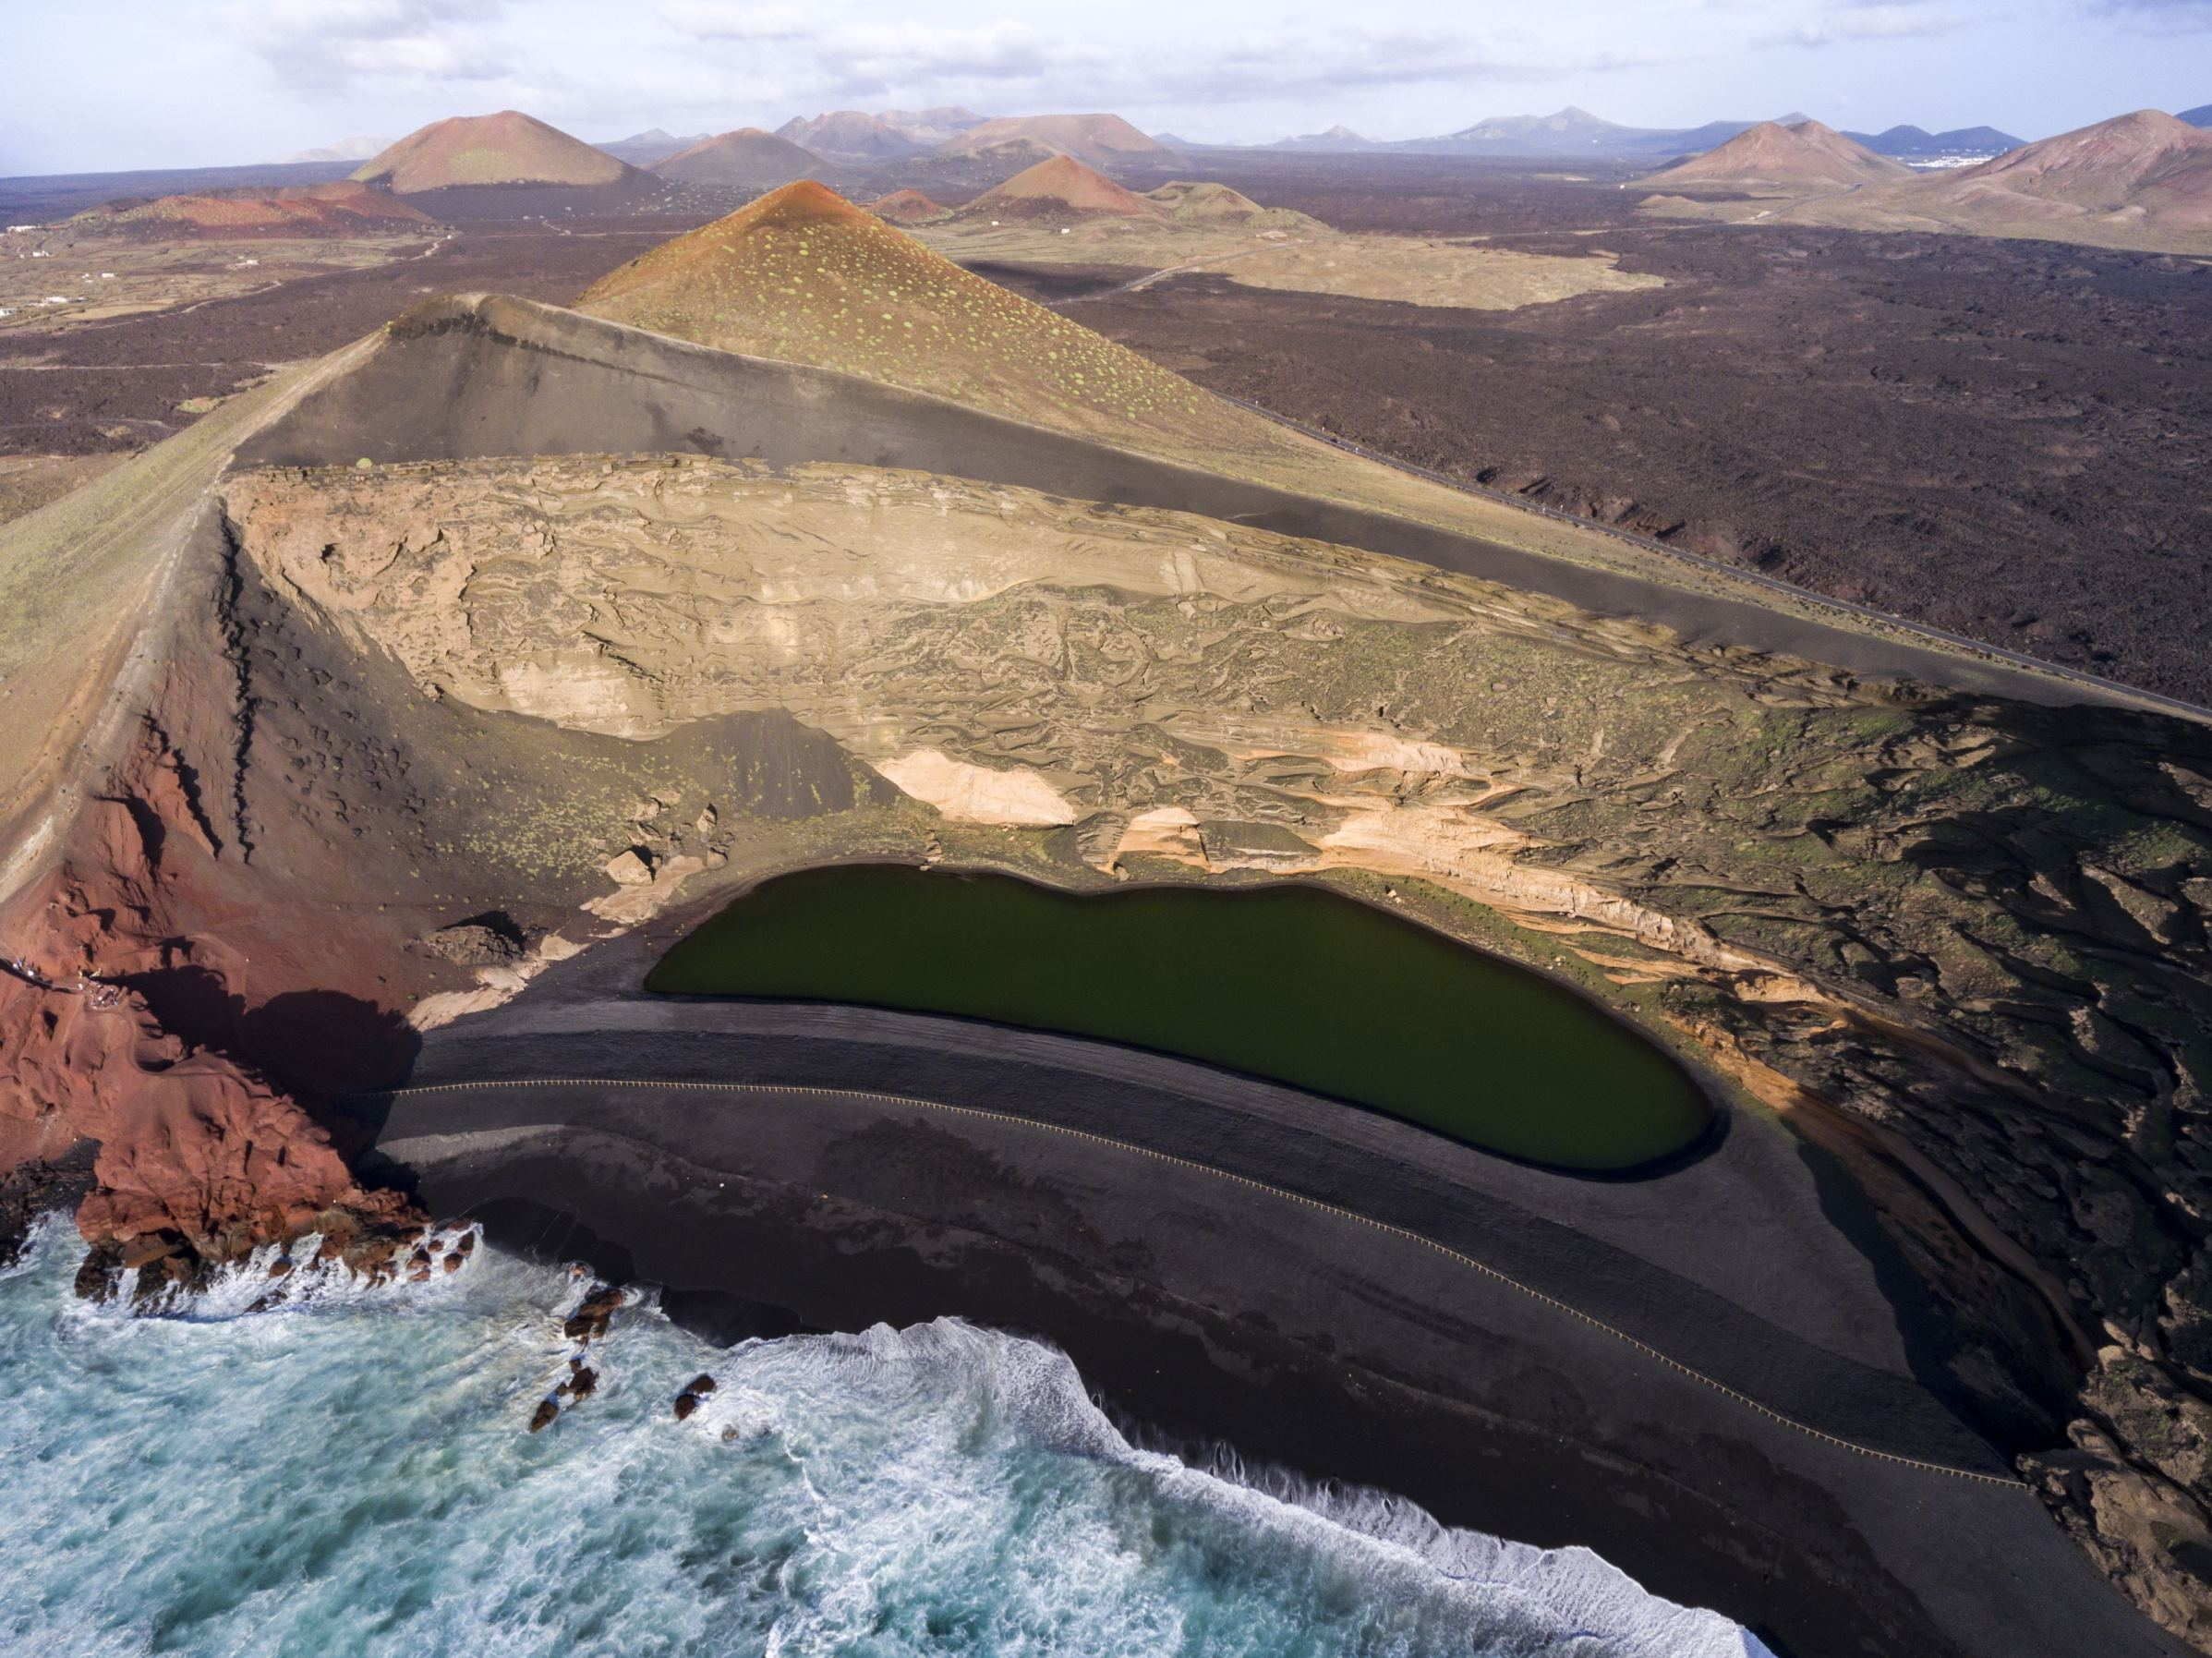 Slide 81 of 100: Much of Lanzarote has been shaped by devastating volcanic eruptions during the 18th century, leaving behind a lunar type landscape, black beaches and locations such as the Timanfaya National Park, which is home to an active volcano that gives the park its name.